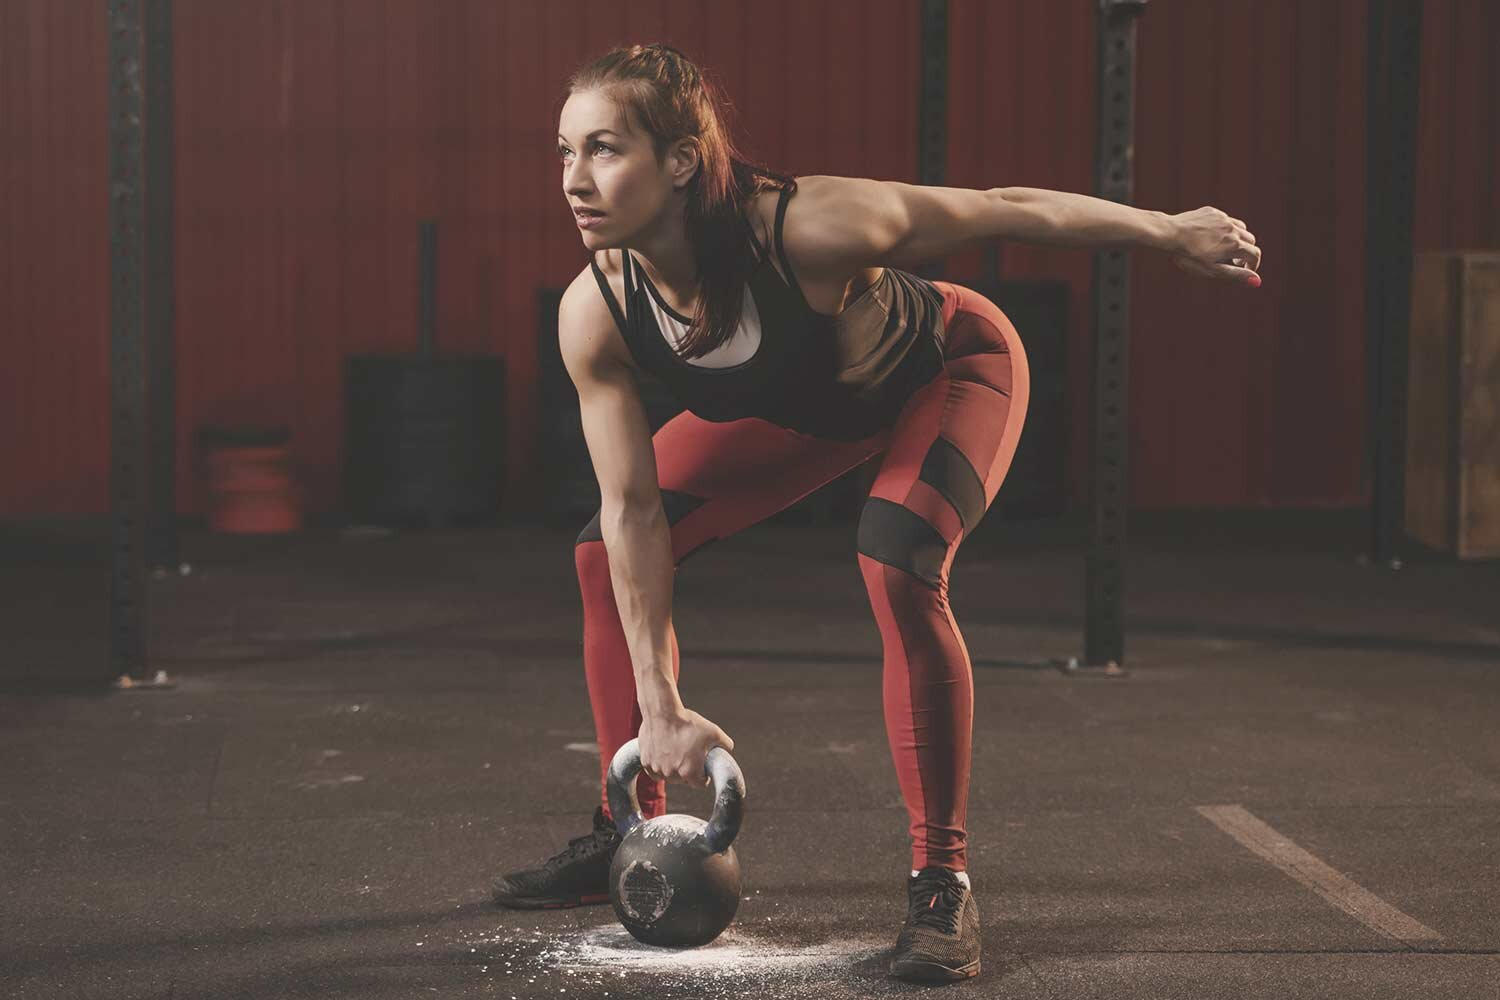 Pillar-content-PHO7.-Exercises_-What-are-the-different-functional-training-exercises-to-try_?.jpg